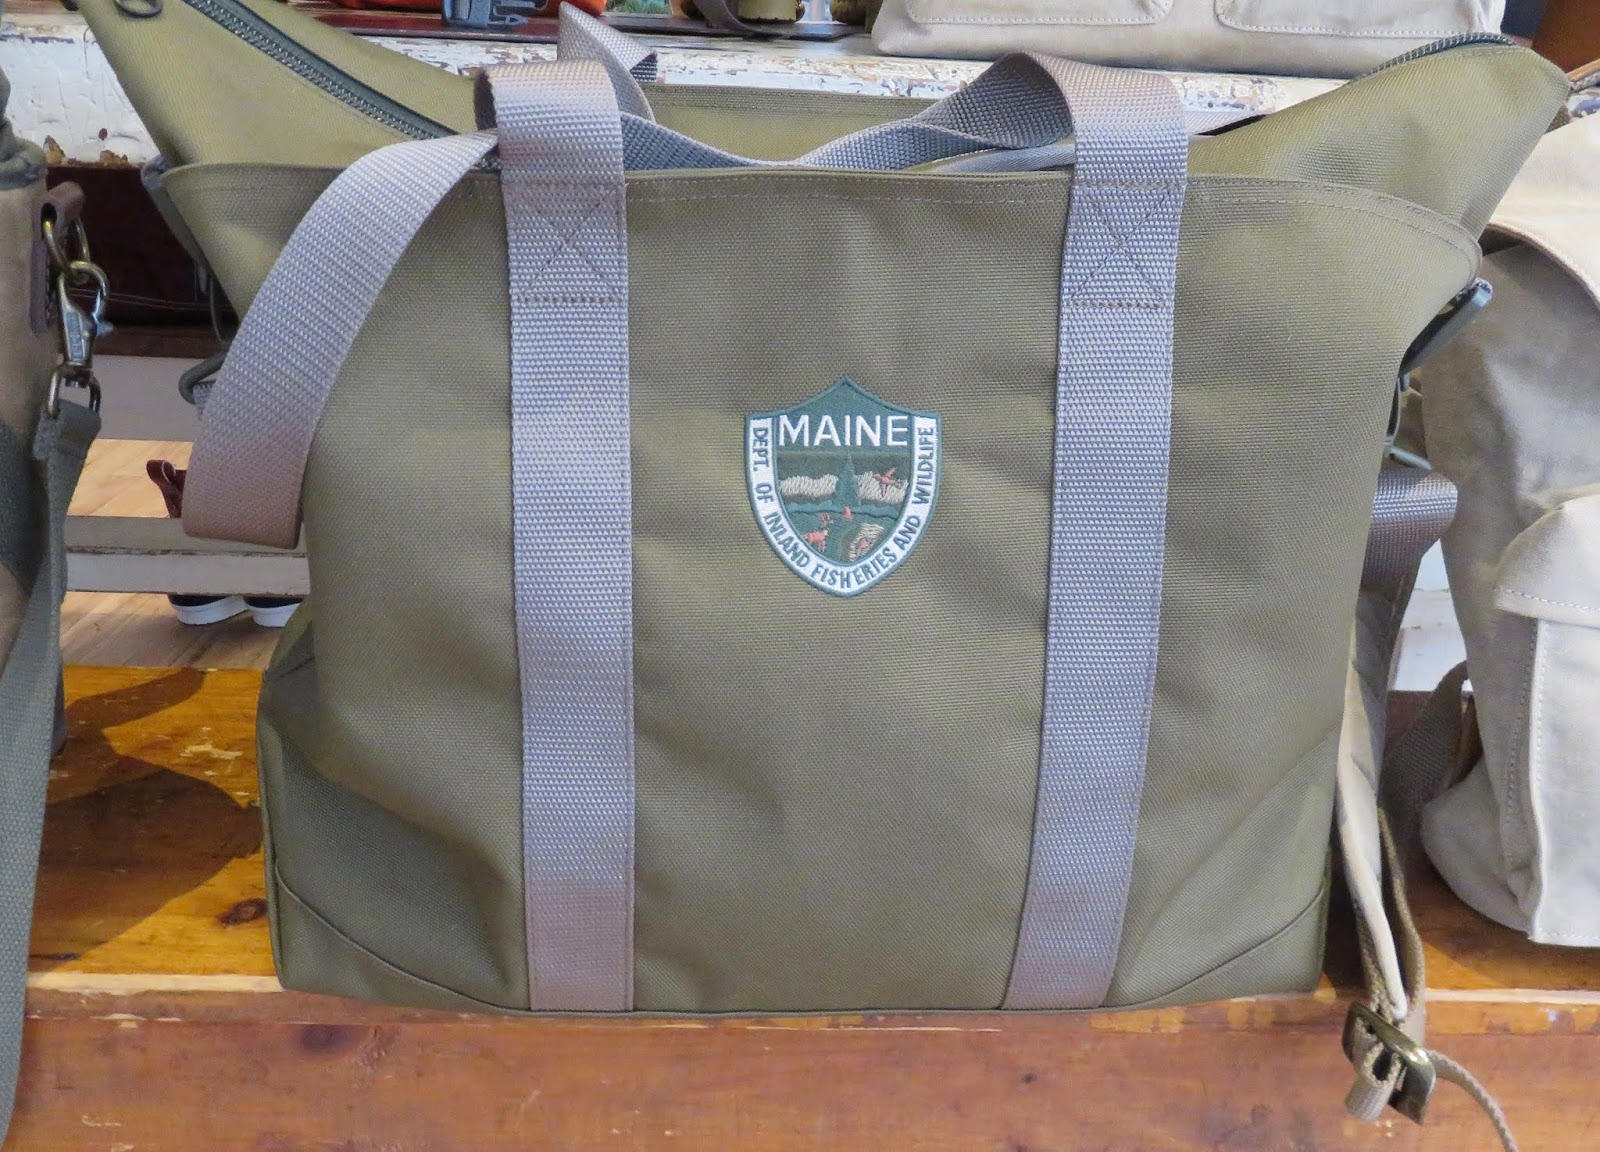 9ab141d9f029c8 L.L. Beans Hunter canvas open tote and iconic boat haulers are seen all  over the world, where ever we go! .Adding to the sturdy last forever bags-darker  ...